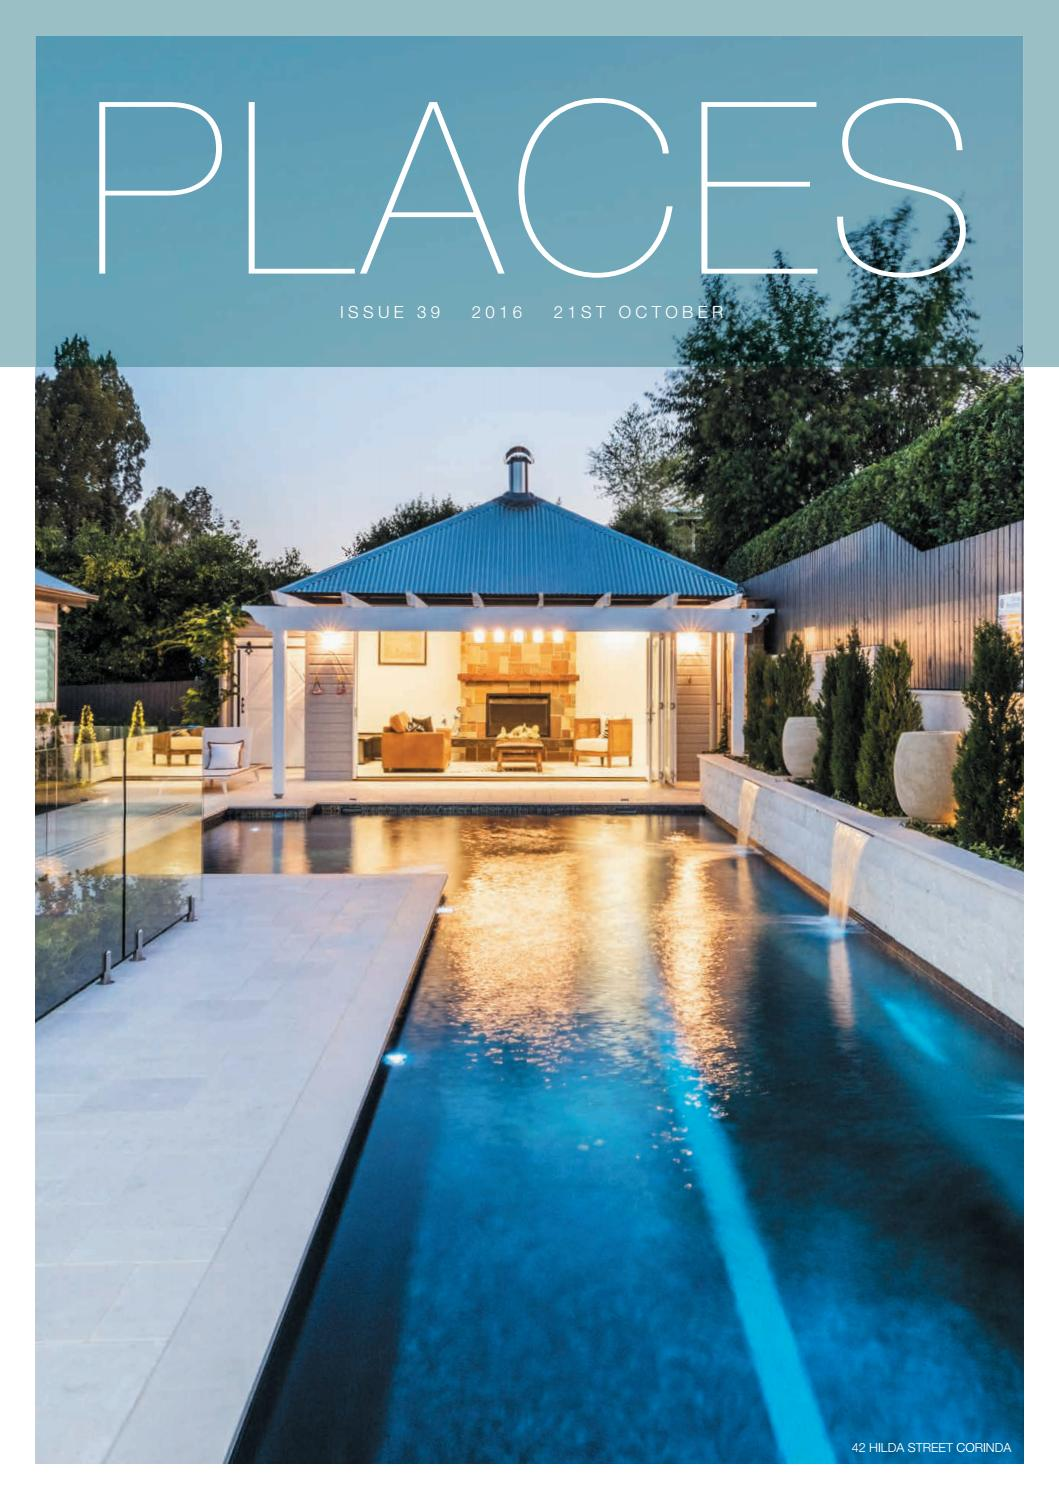 Places Magazine Issue 39 2016 by Place - issuu